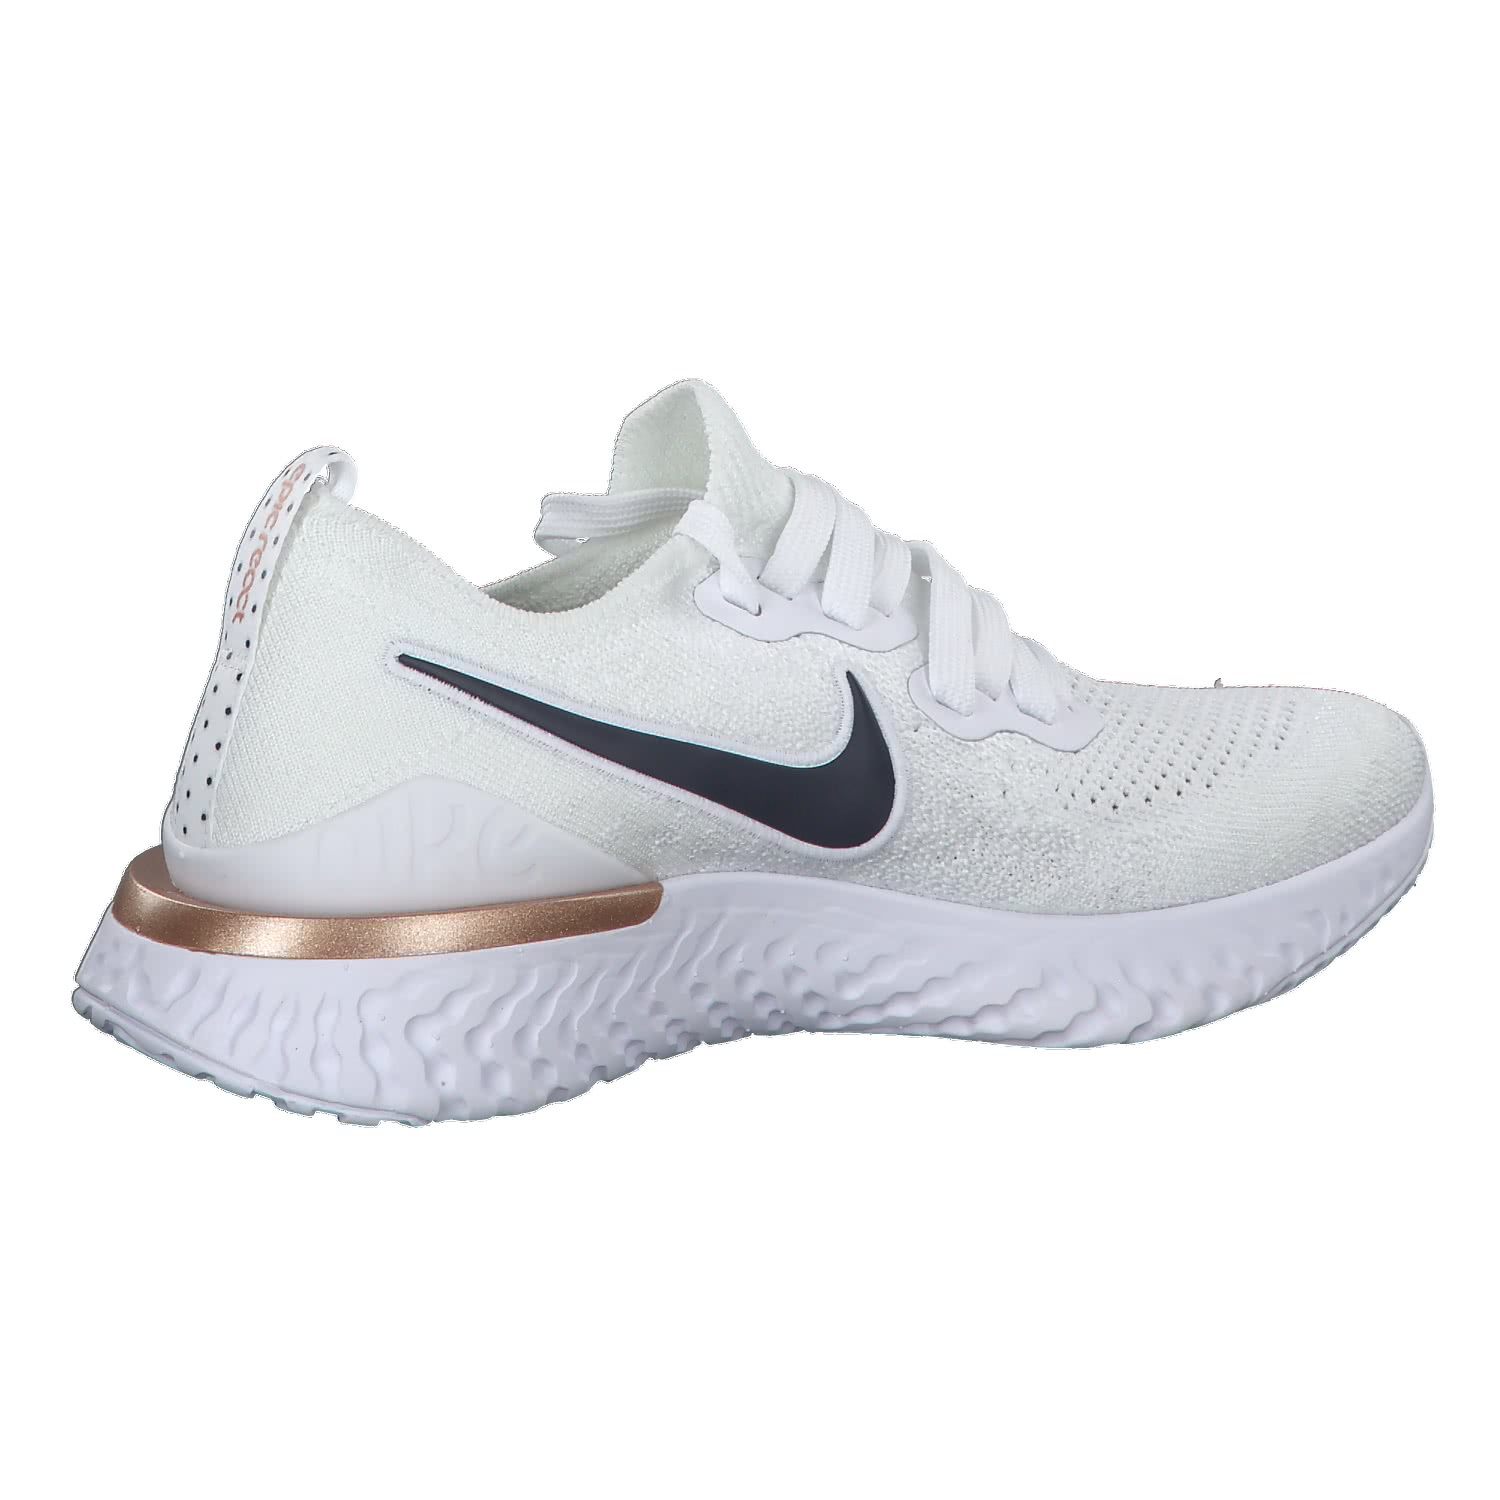 Neu | Nike Performance Epic React Flyknit Damen Laufschuhe